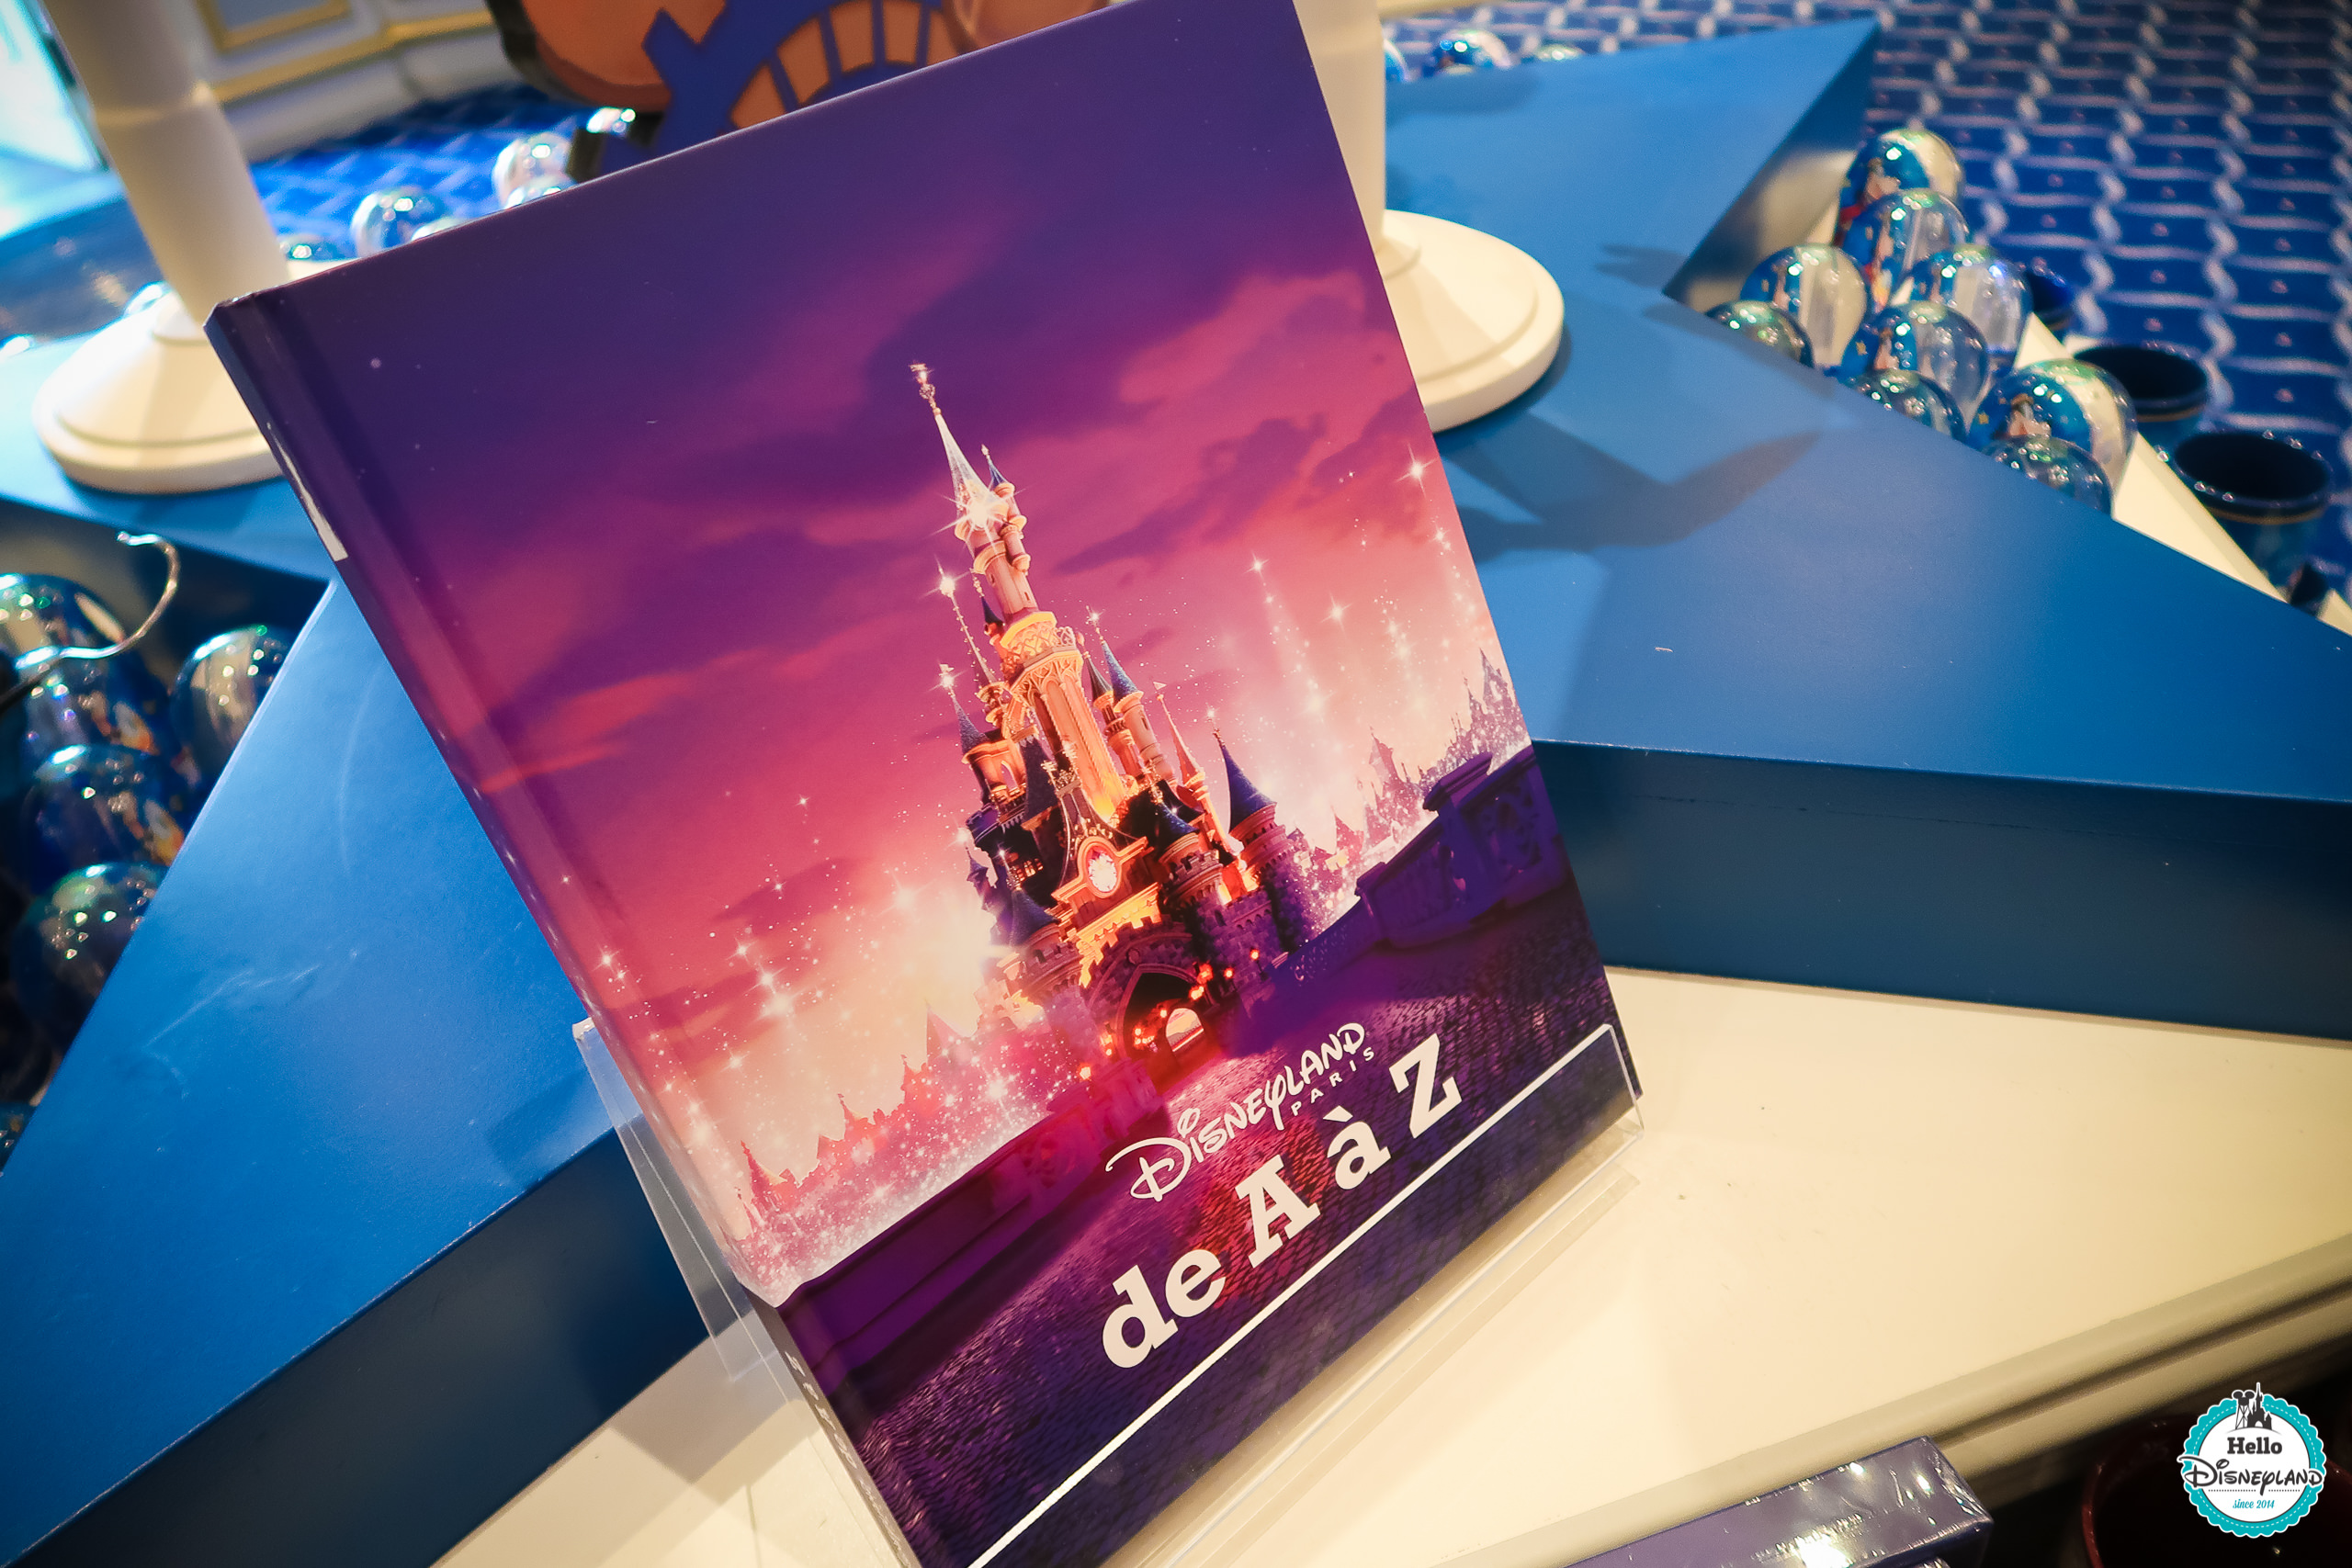 livre 25 ans - Disneyland Paris / Disneyland Paris 25th